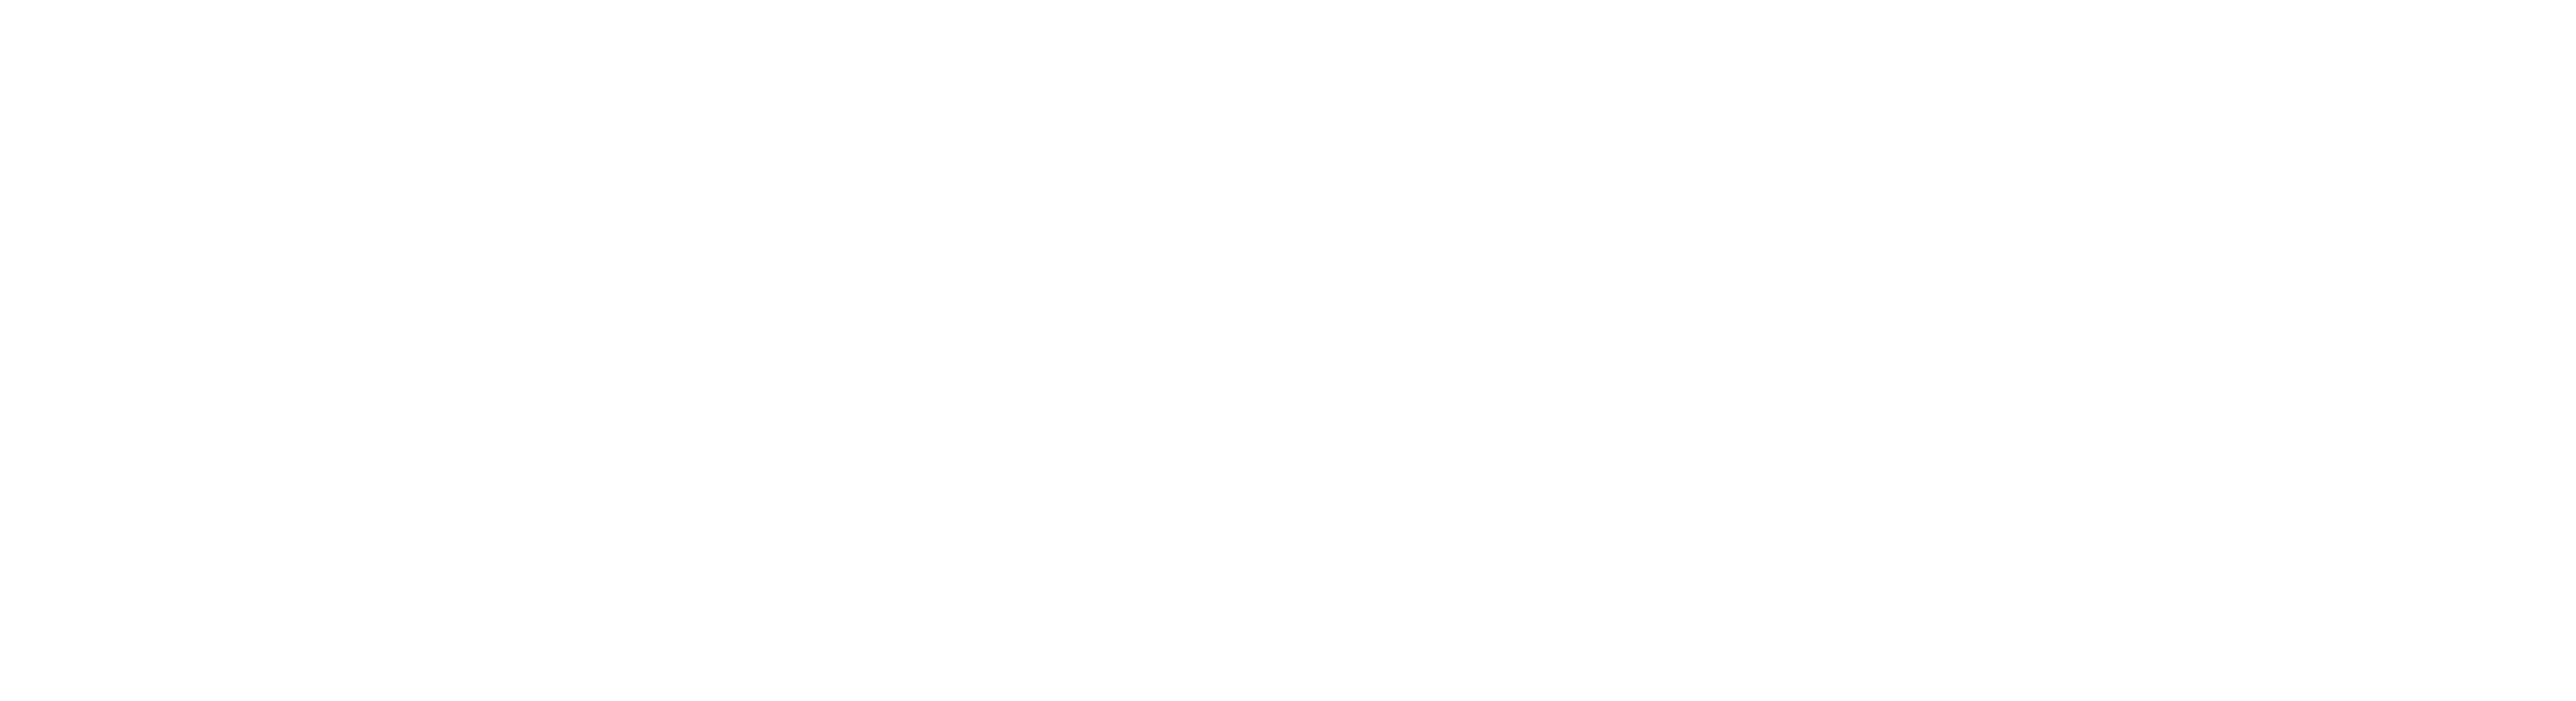 Hentges Tree Service in Missouri